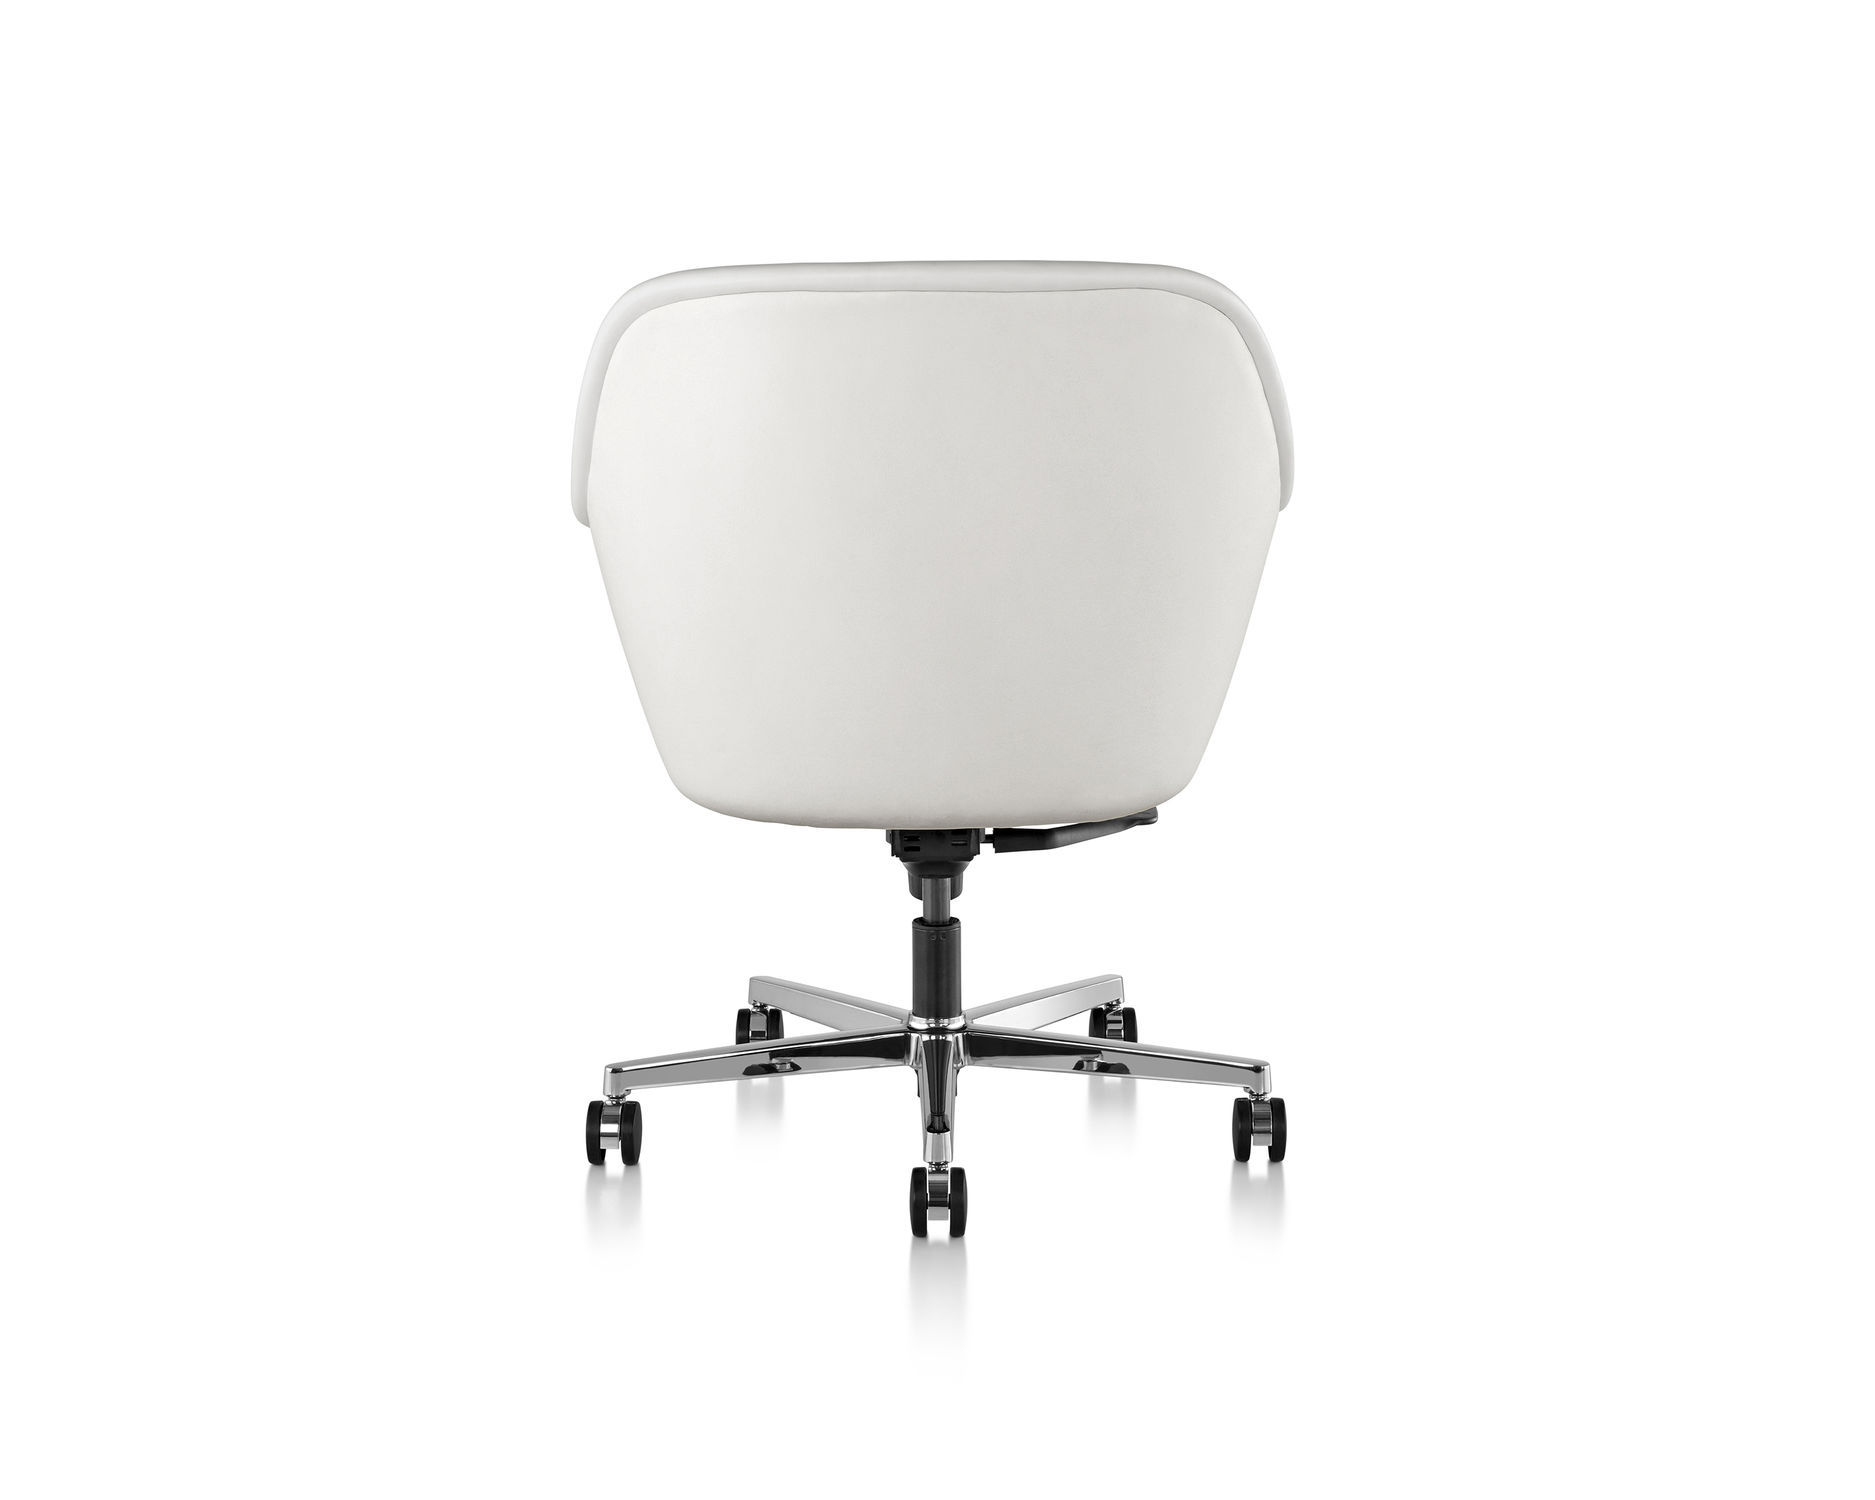 ... Conference Chair With Armrests / Upholstered / On Casters / Swivel  BUMPER By Ward Bennett Geiger ...